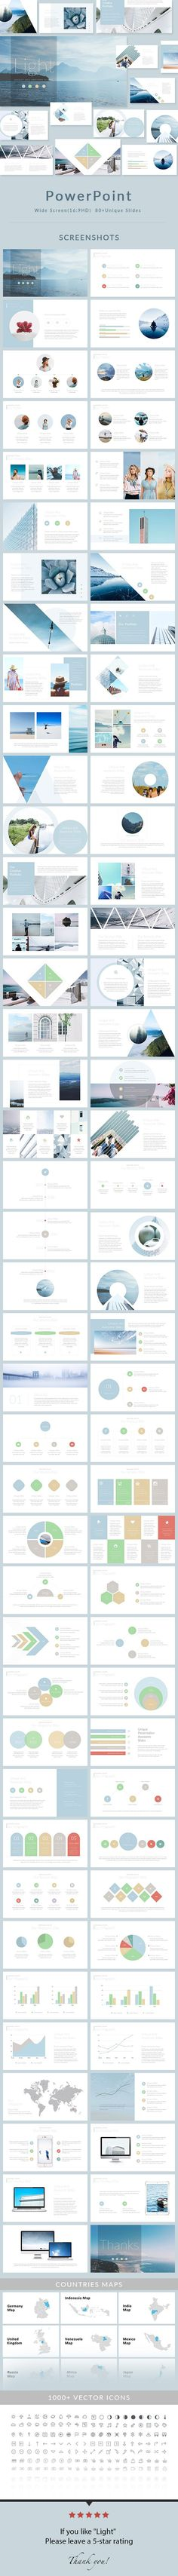 Light Keynote Presentation Template Business Keynote Templates - Keynote - Ideas of Keynote - Light Keynote Presentation Template Business Keynote Templates Layout Design, Graphisches Design, Slide Design, Game Design, Keynote Presentation, Design Presentation, Business Presentation, Keynote Design, Brochure Design